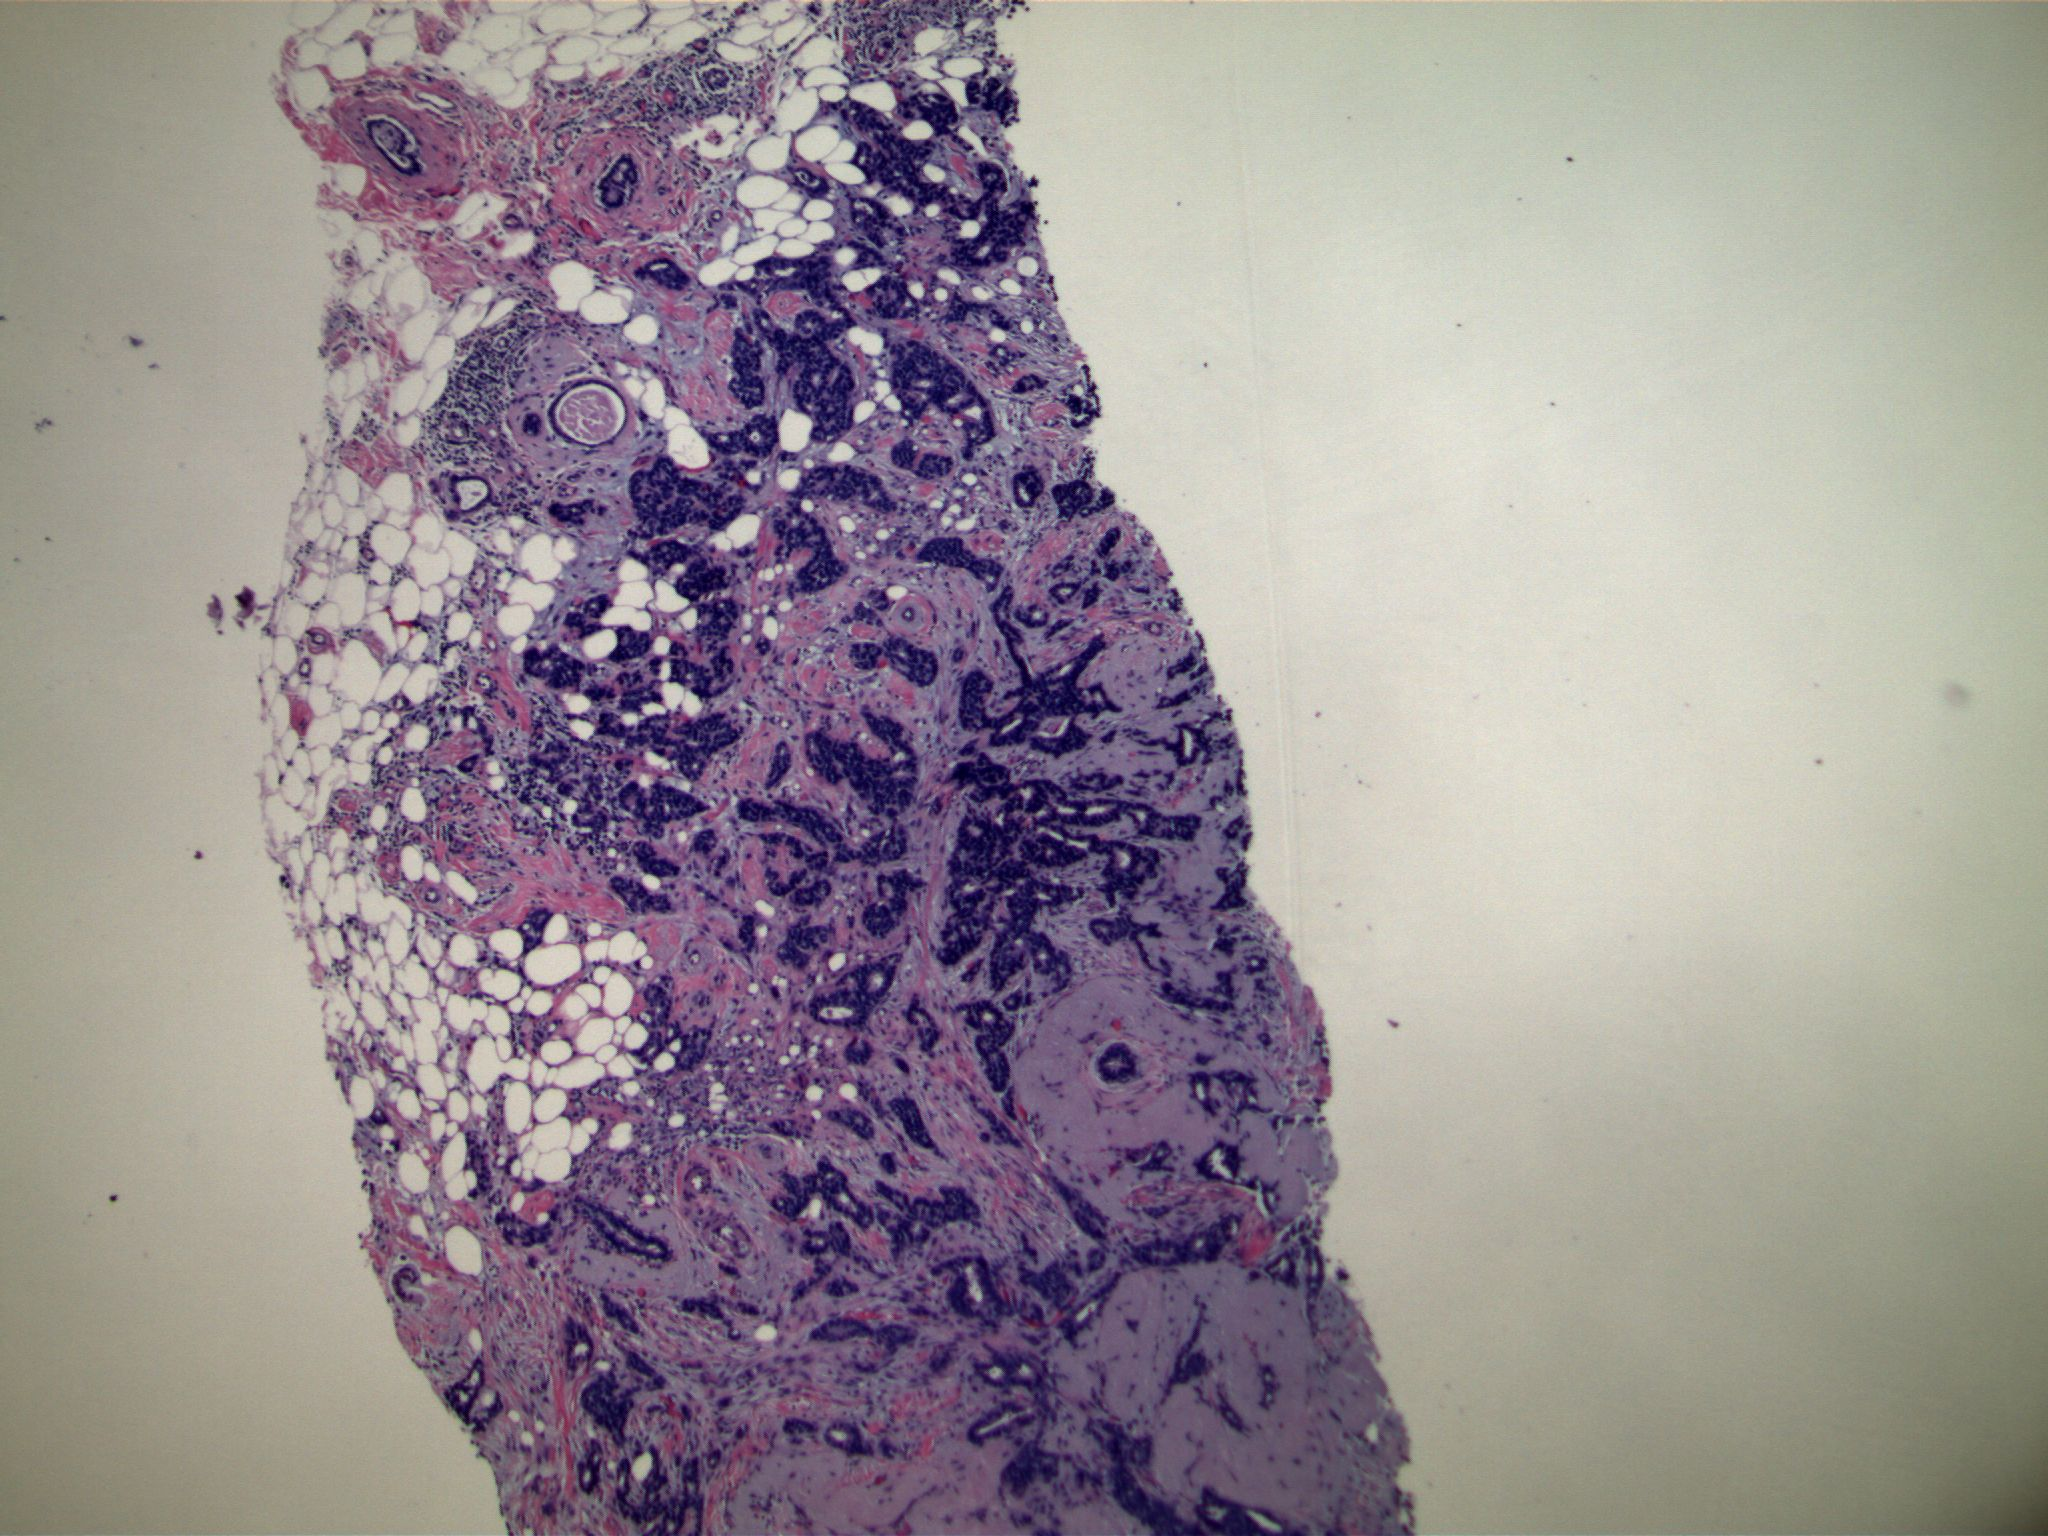 Image 1.  Core biopsy specimen showing diffusely infiltrative small nests and glandular structures.